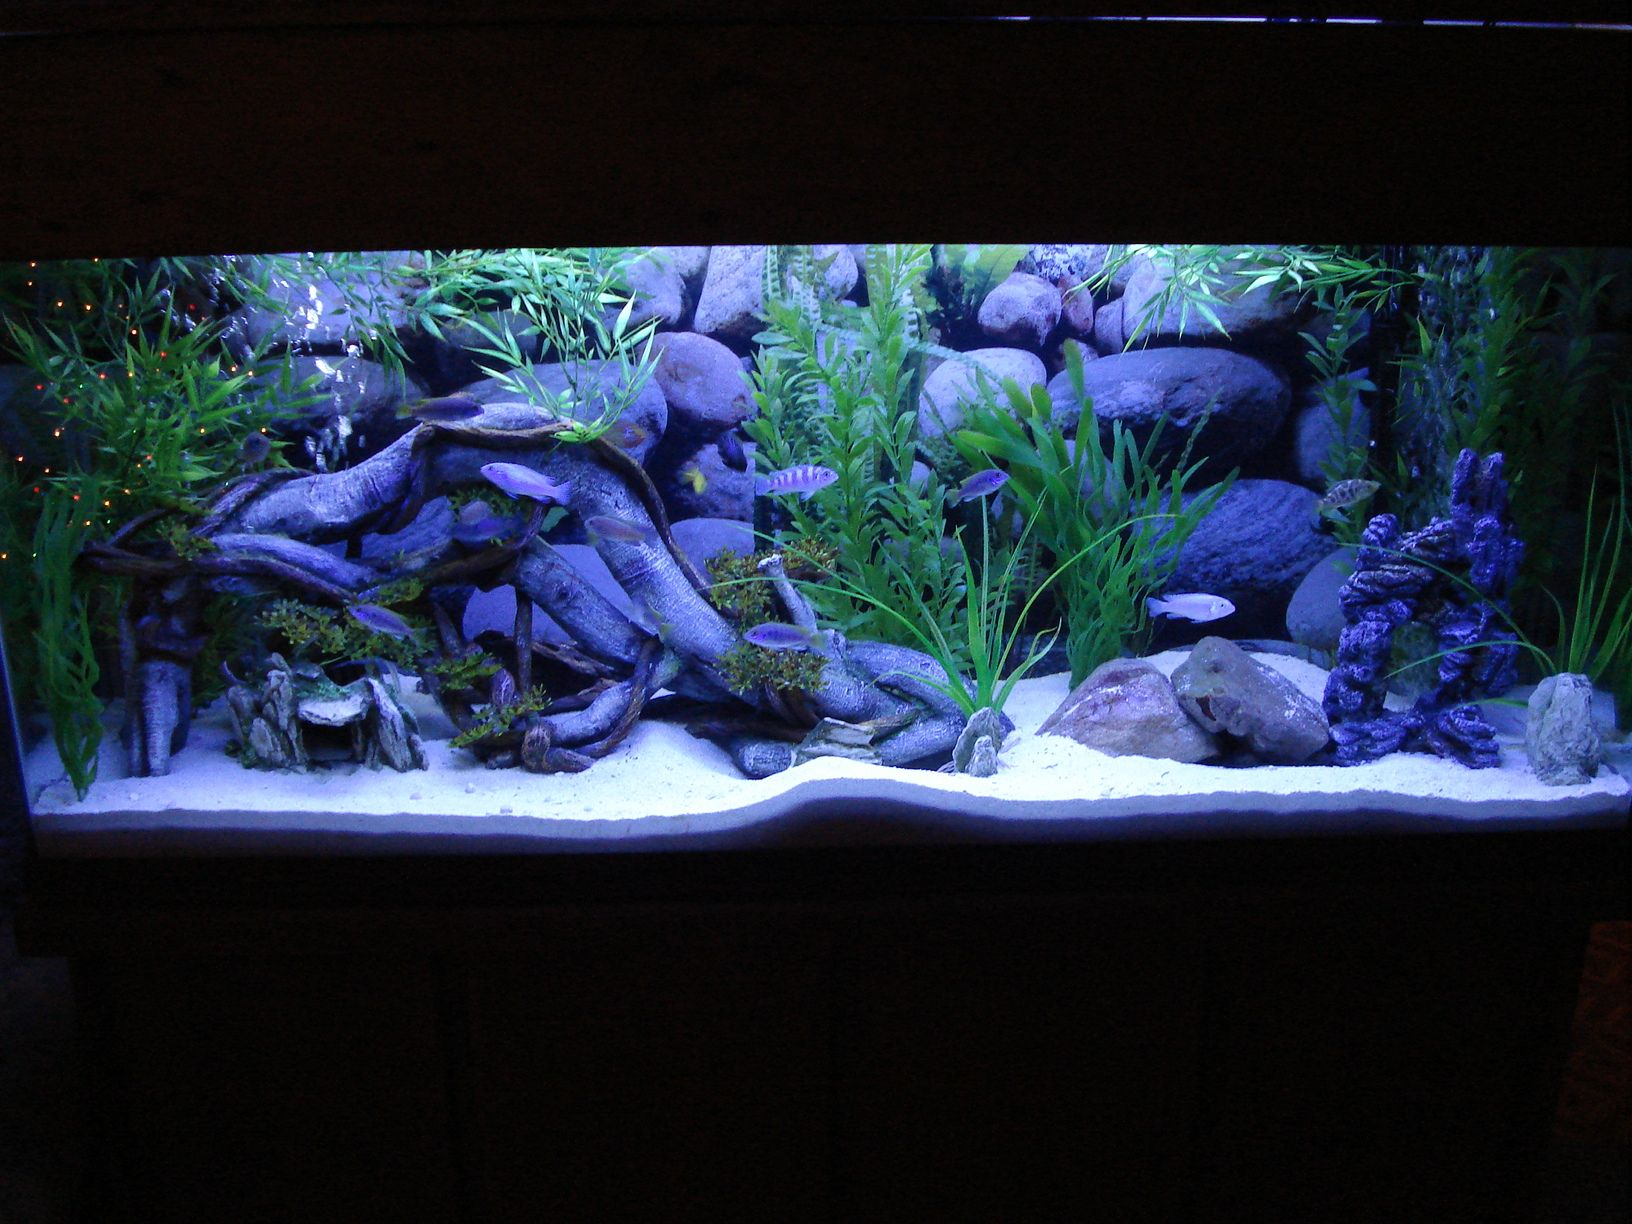 Aquarium fish tank instructions - Find This Pin And More On Fish Tanks